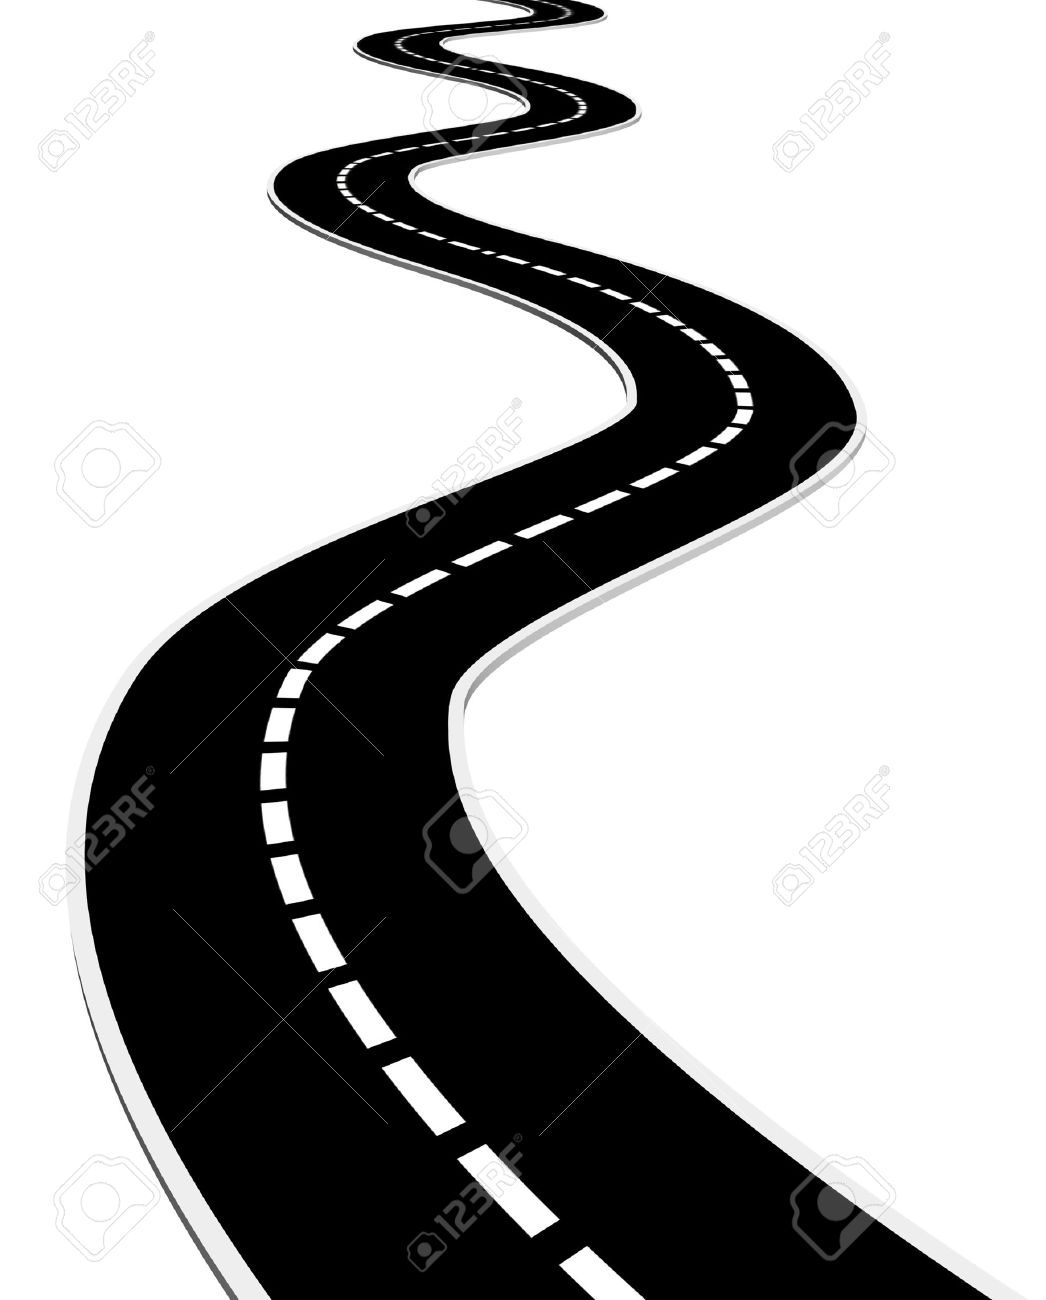 A long path clipart image transparent Winding Road Clipart | Free download best Winding Road Clipart on ... image transparent